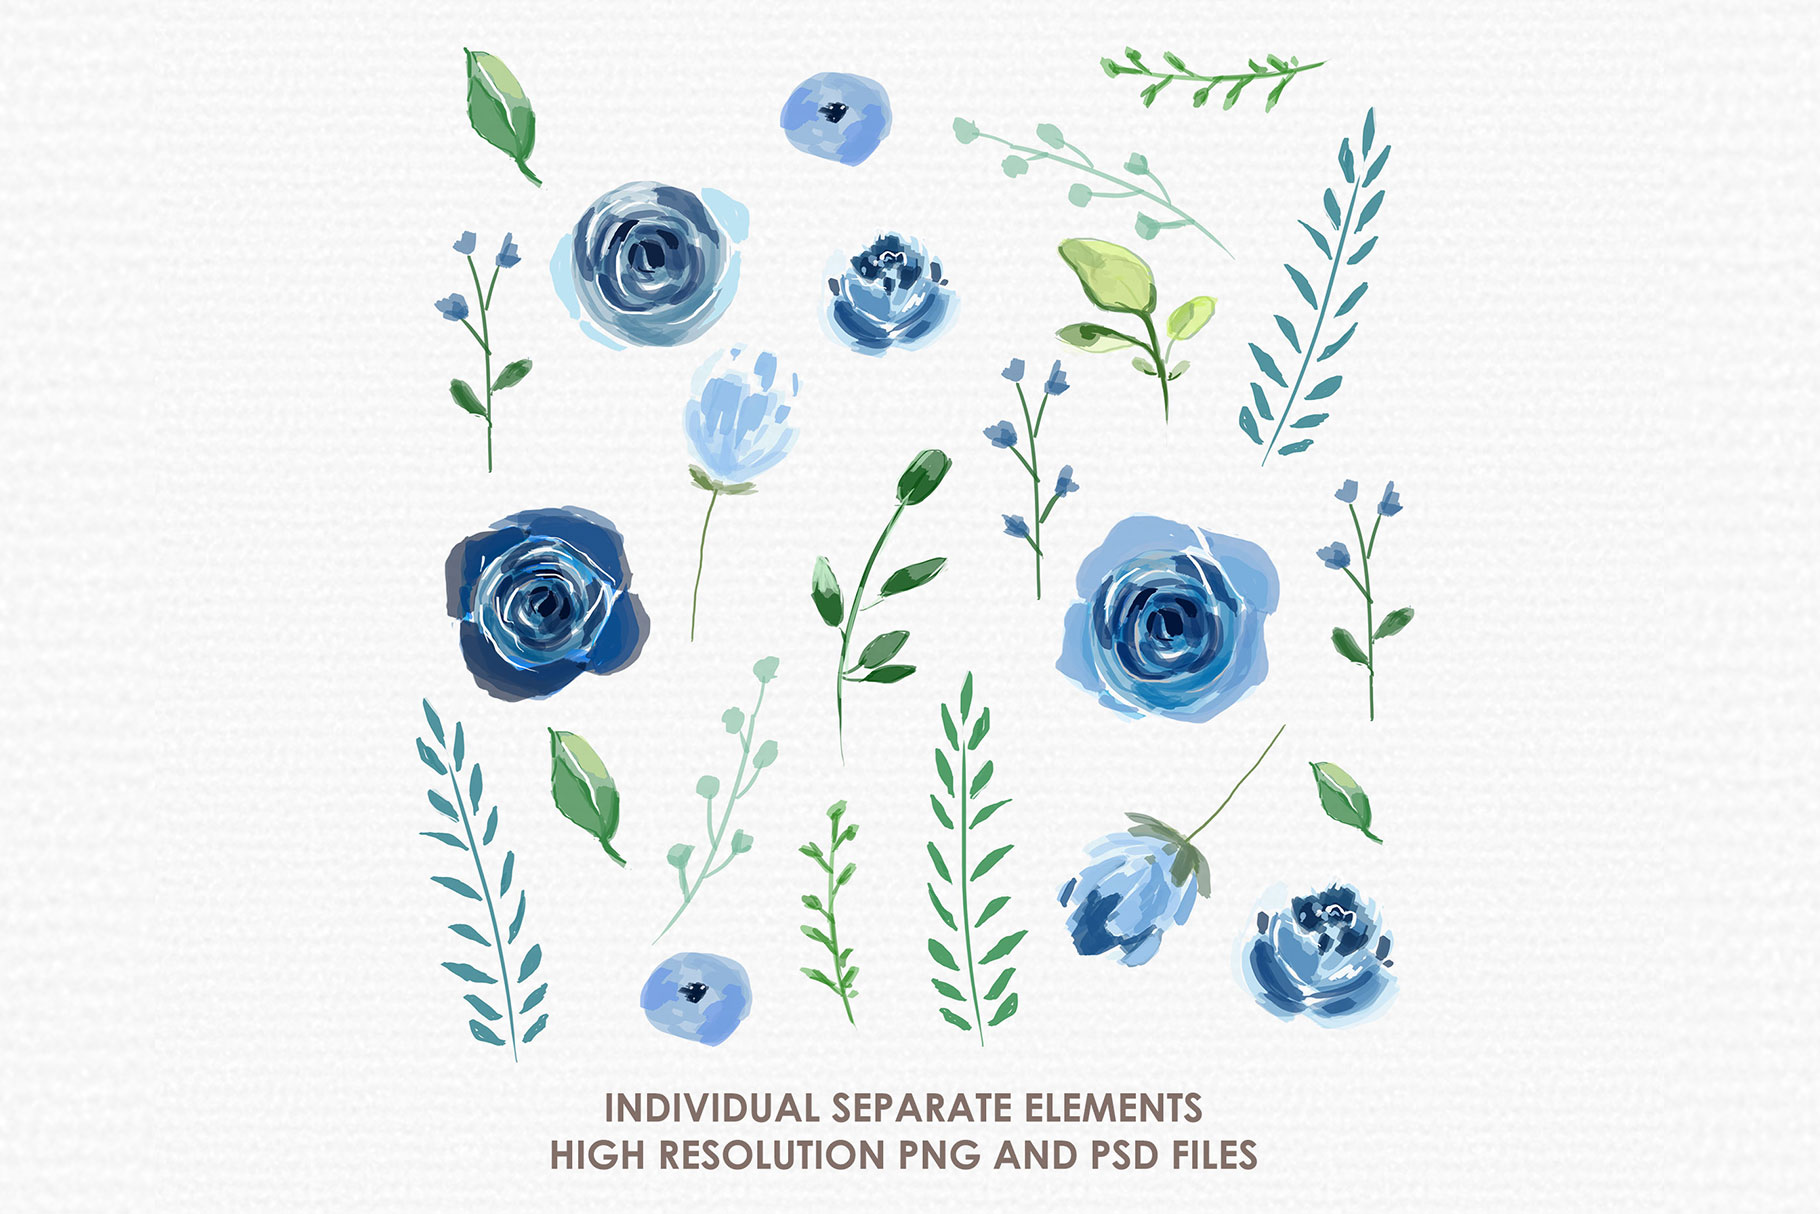 Bluebell - Digital Watercolor Floral Flower Style Clipart example image 2